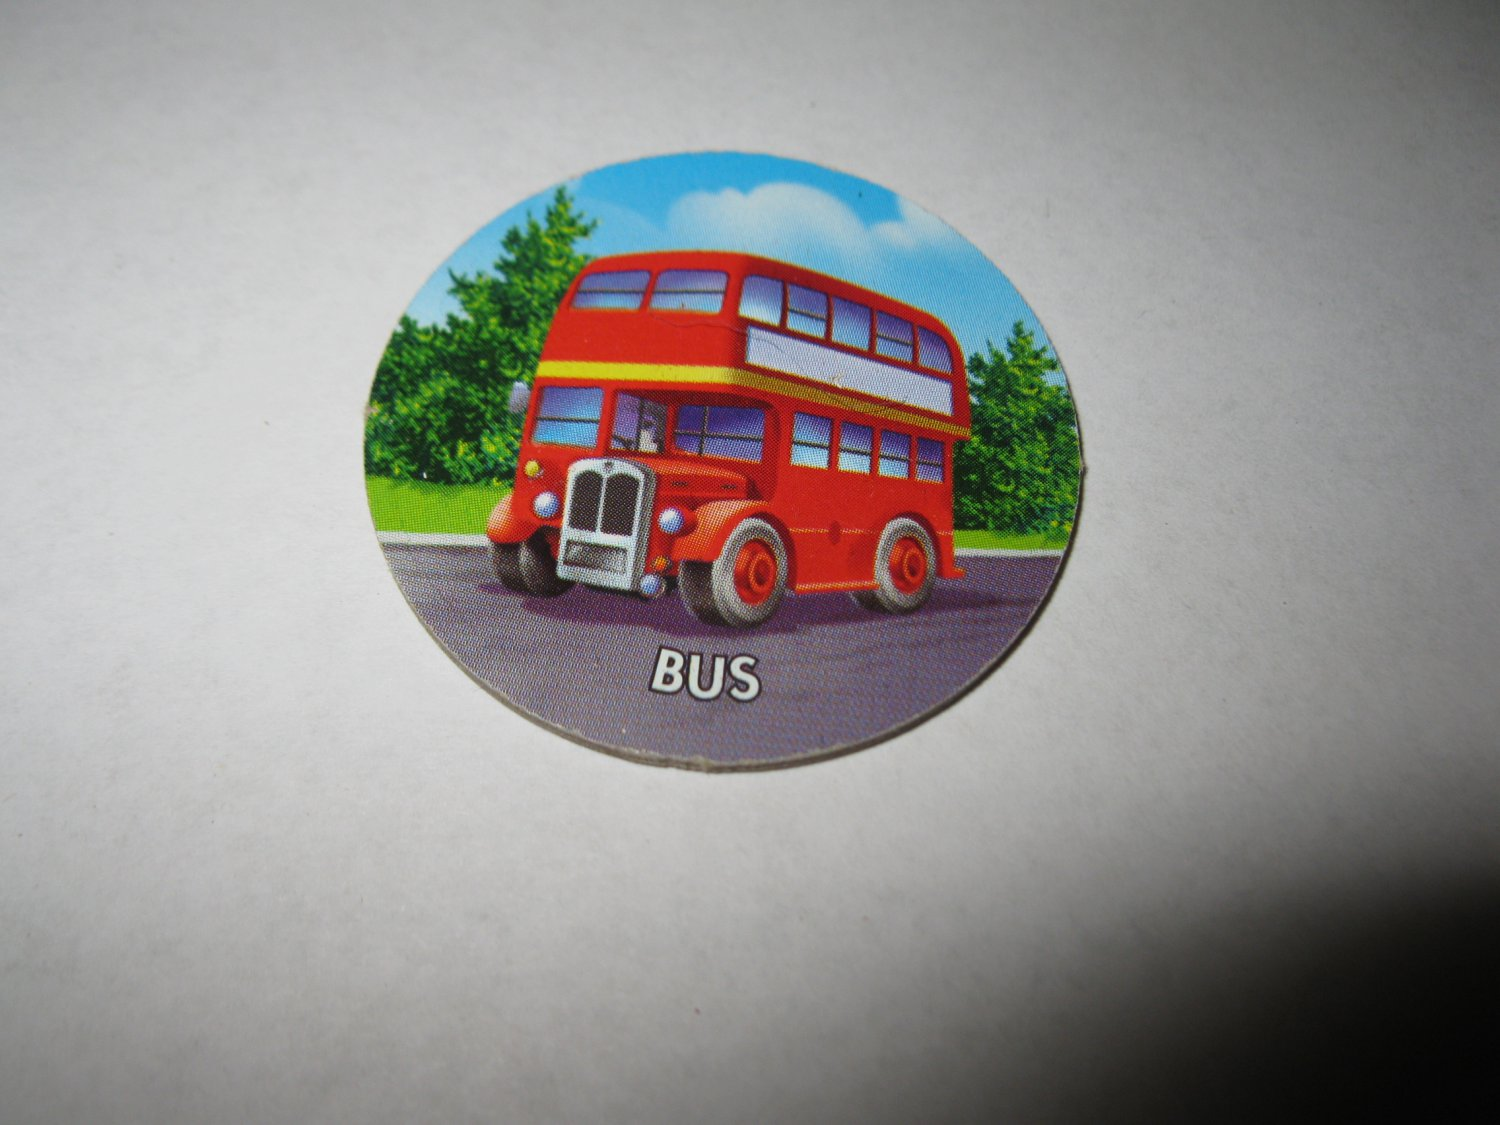 2005 Clue Mysteries Board Game Piece: Bus circle tab